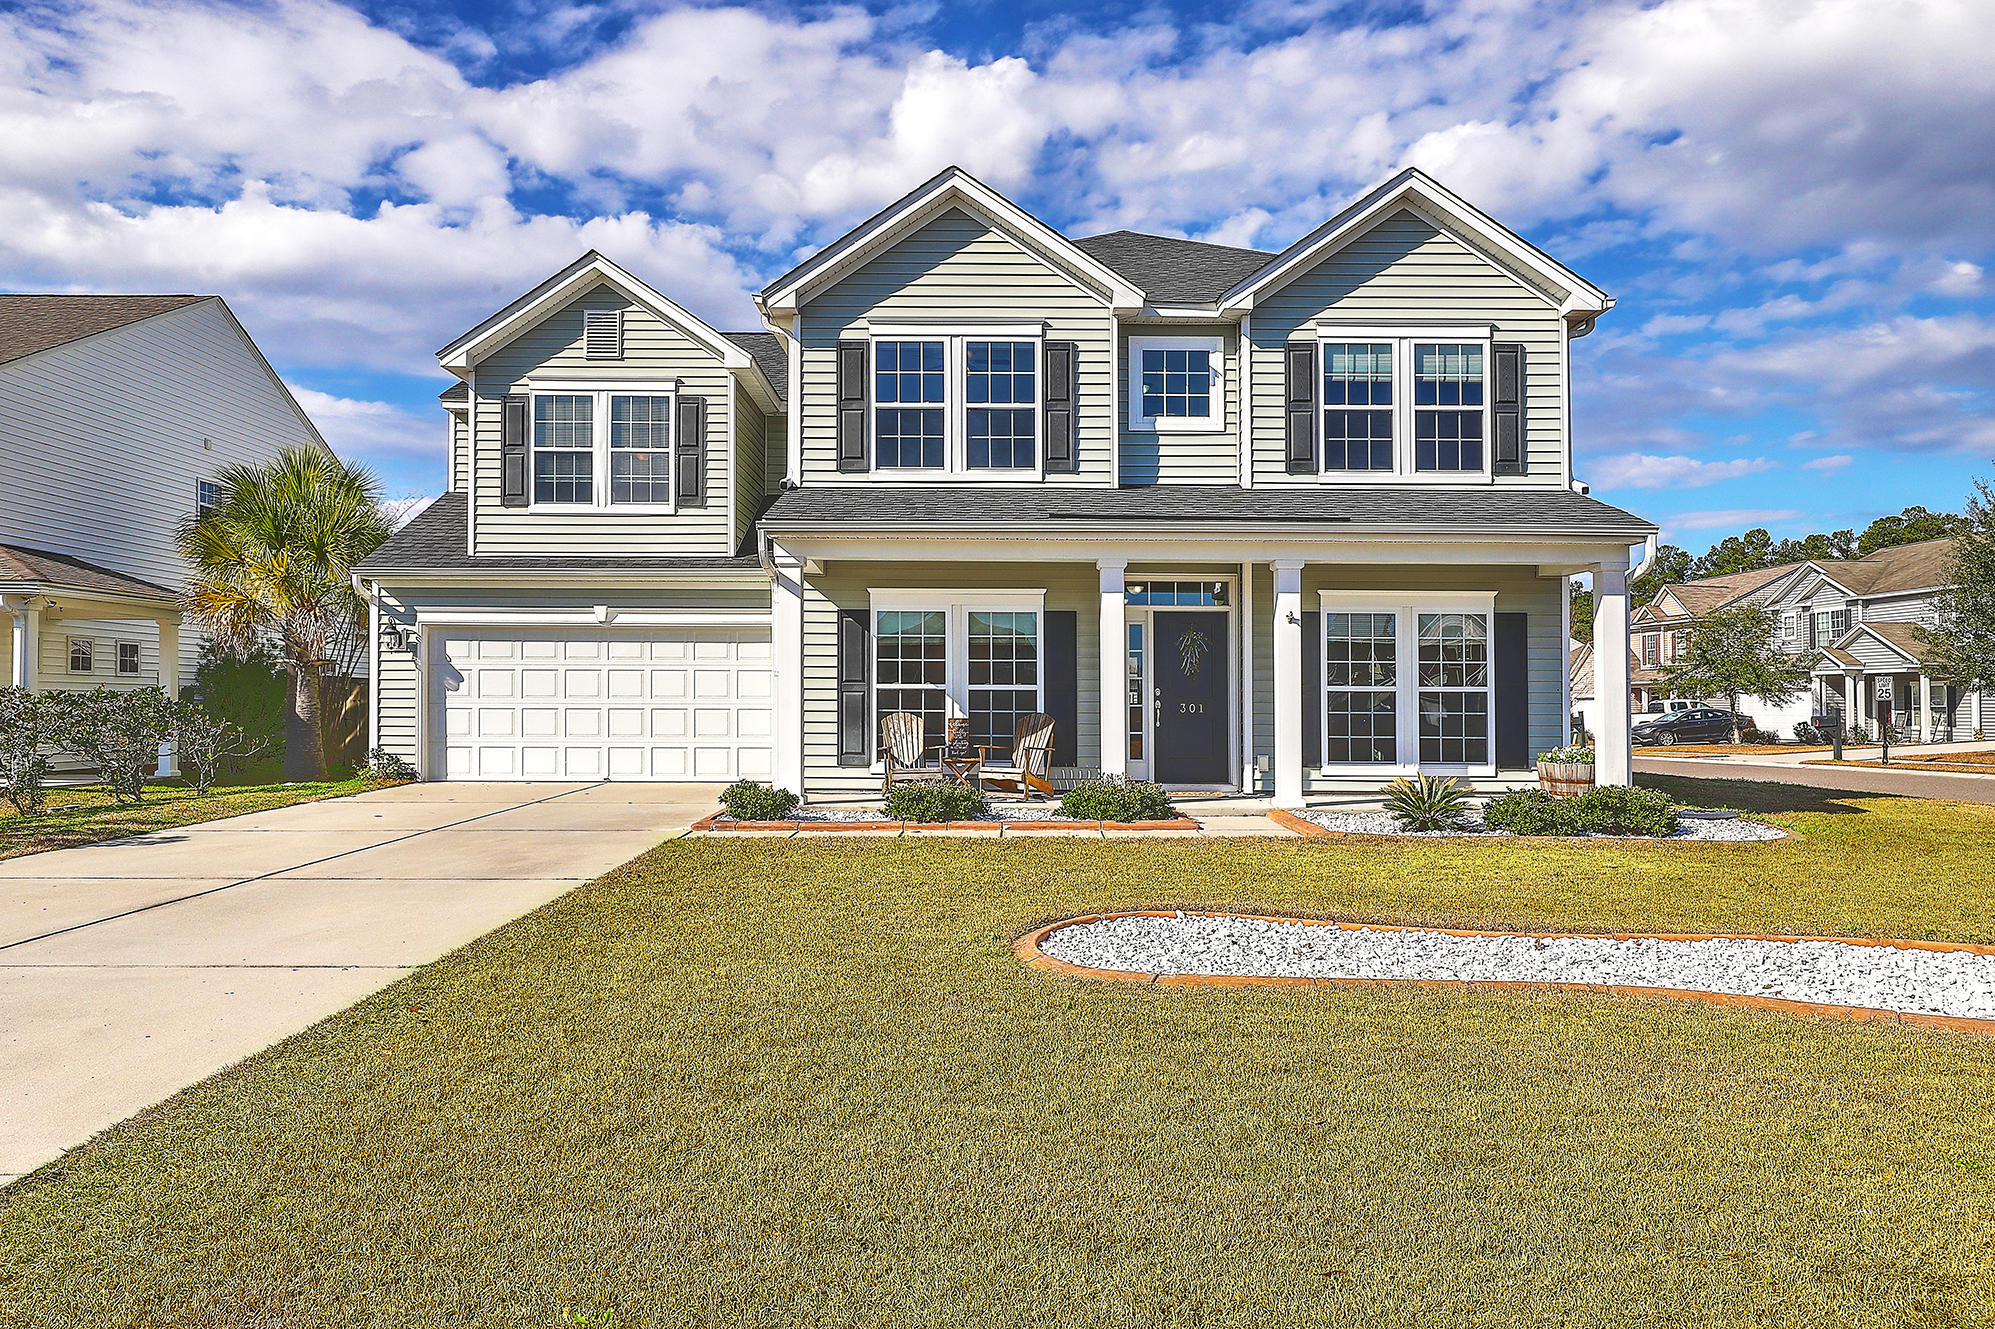 301 Willow Tree Lane Goose Creek, Sc 29445